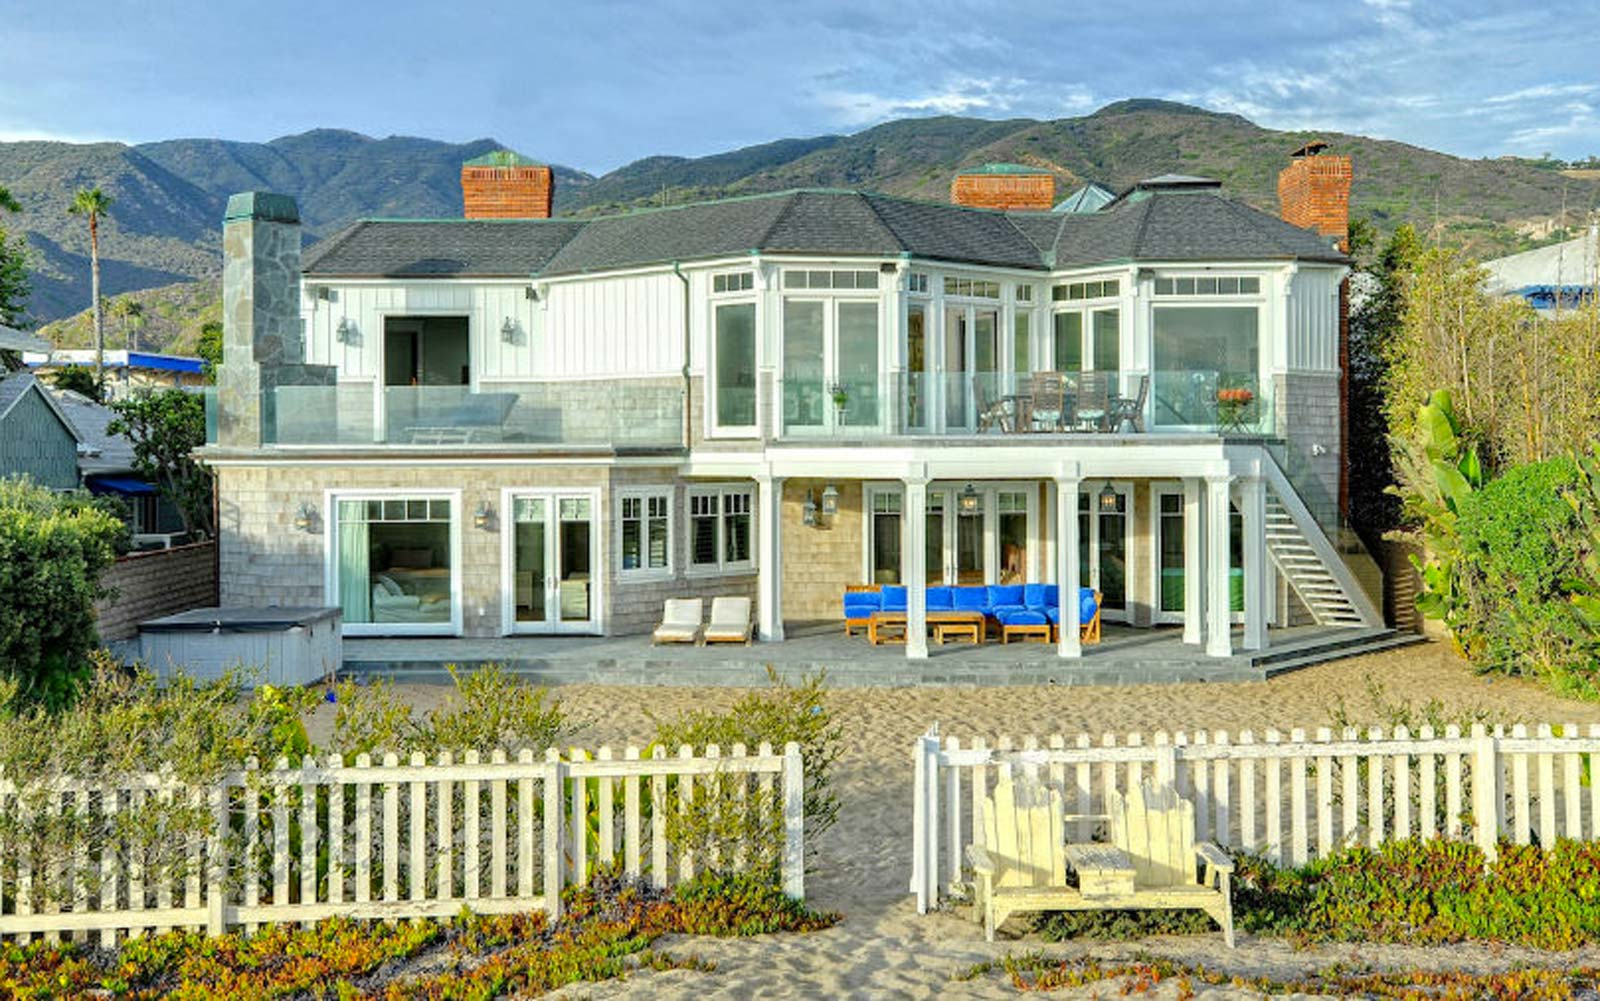 You Can Rent Reese Witherspoon's Beach House From 'Big Little Lies'